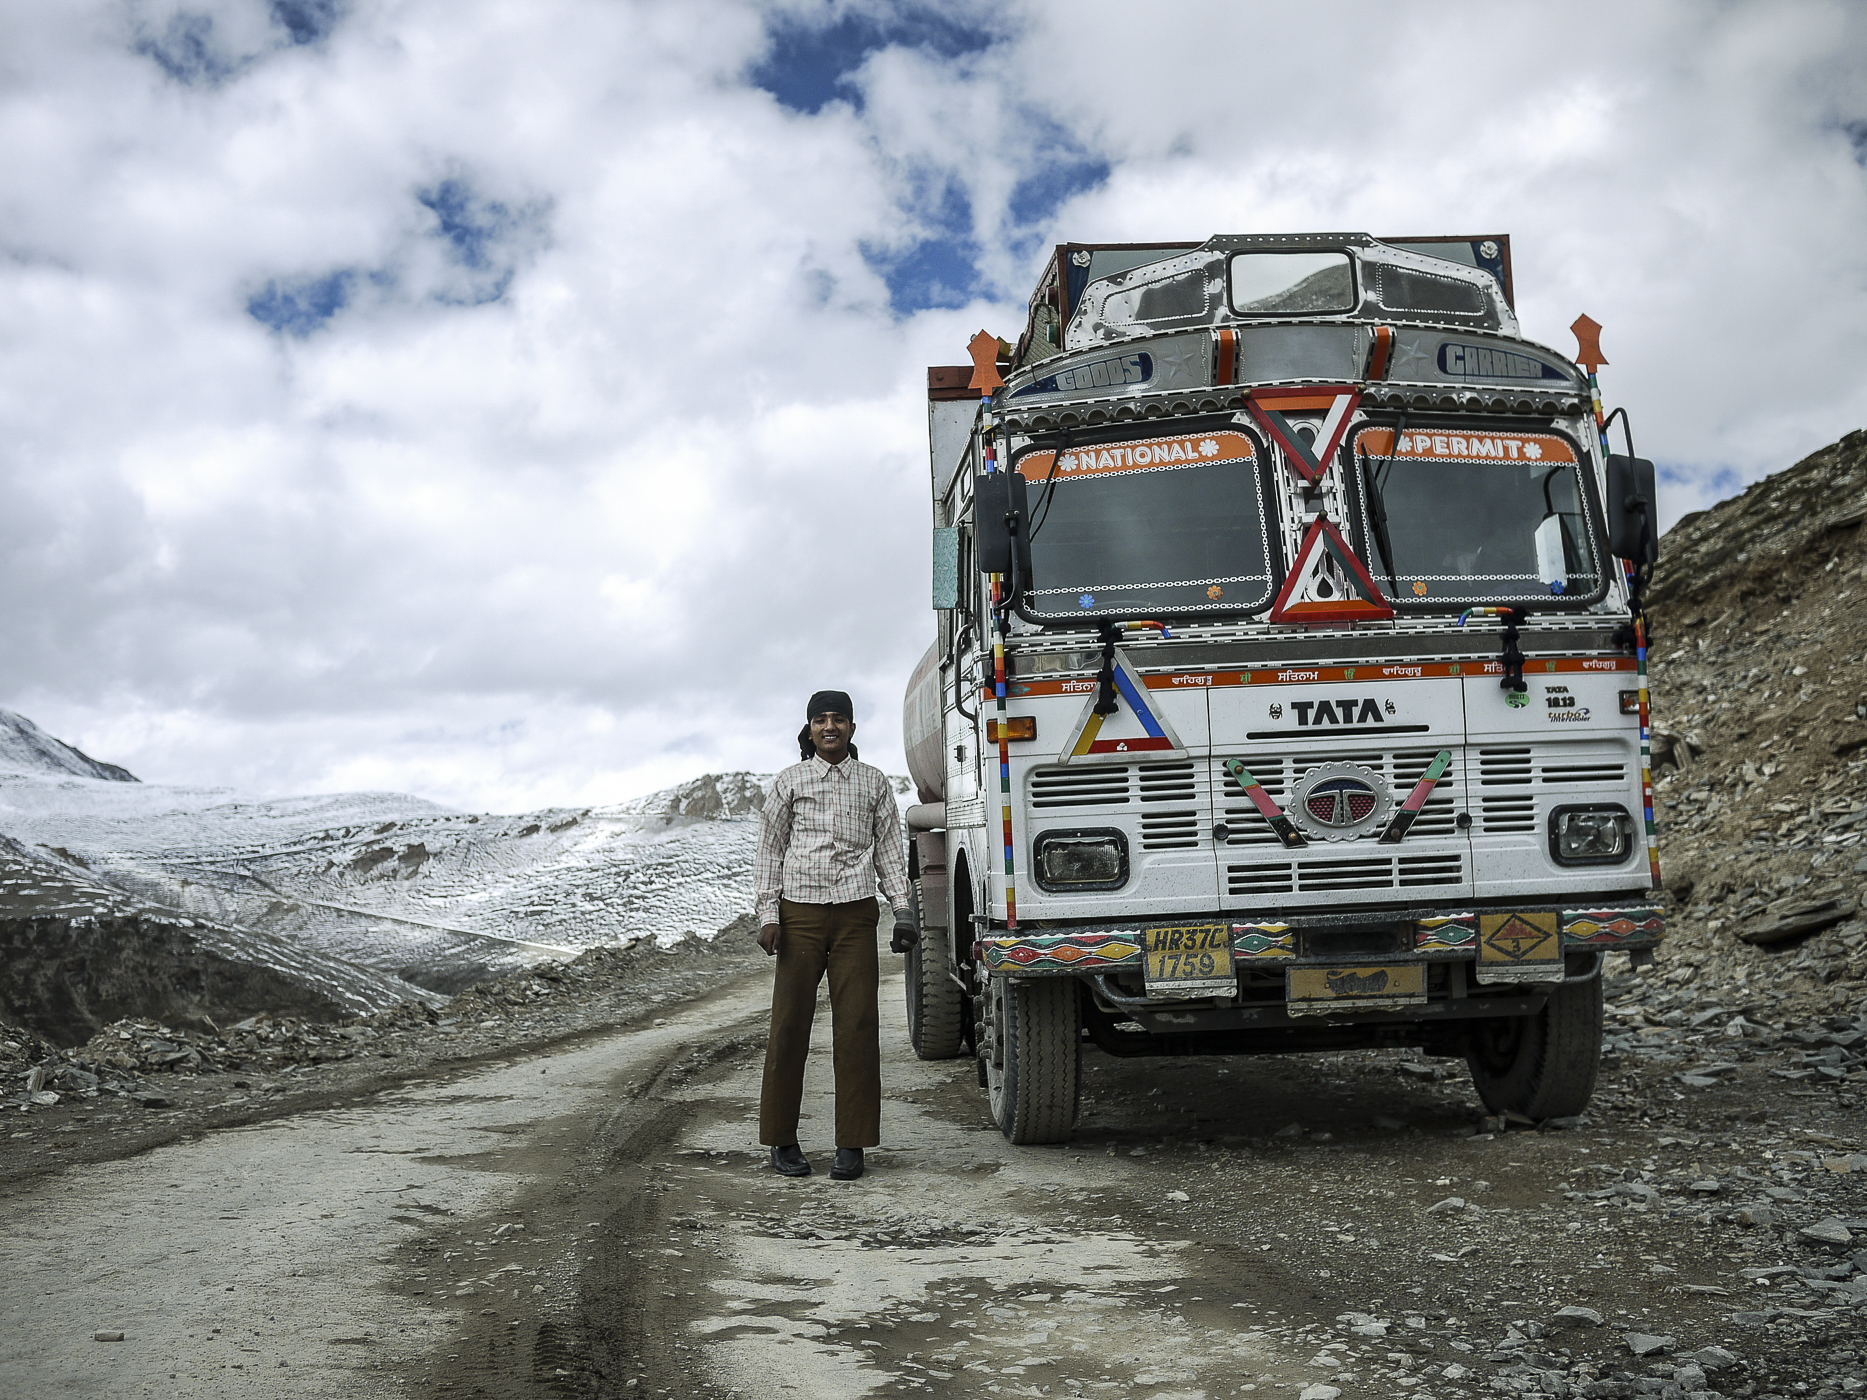 Himalayan roads are used for military transport, tourism, and local traffic.